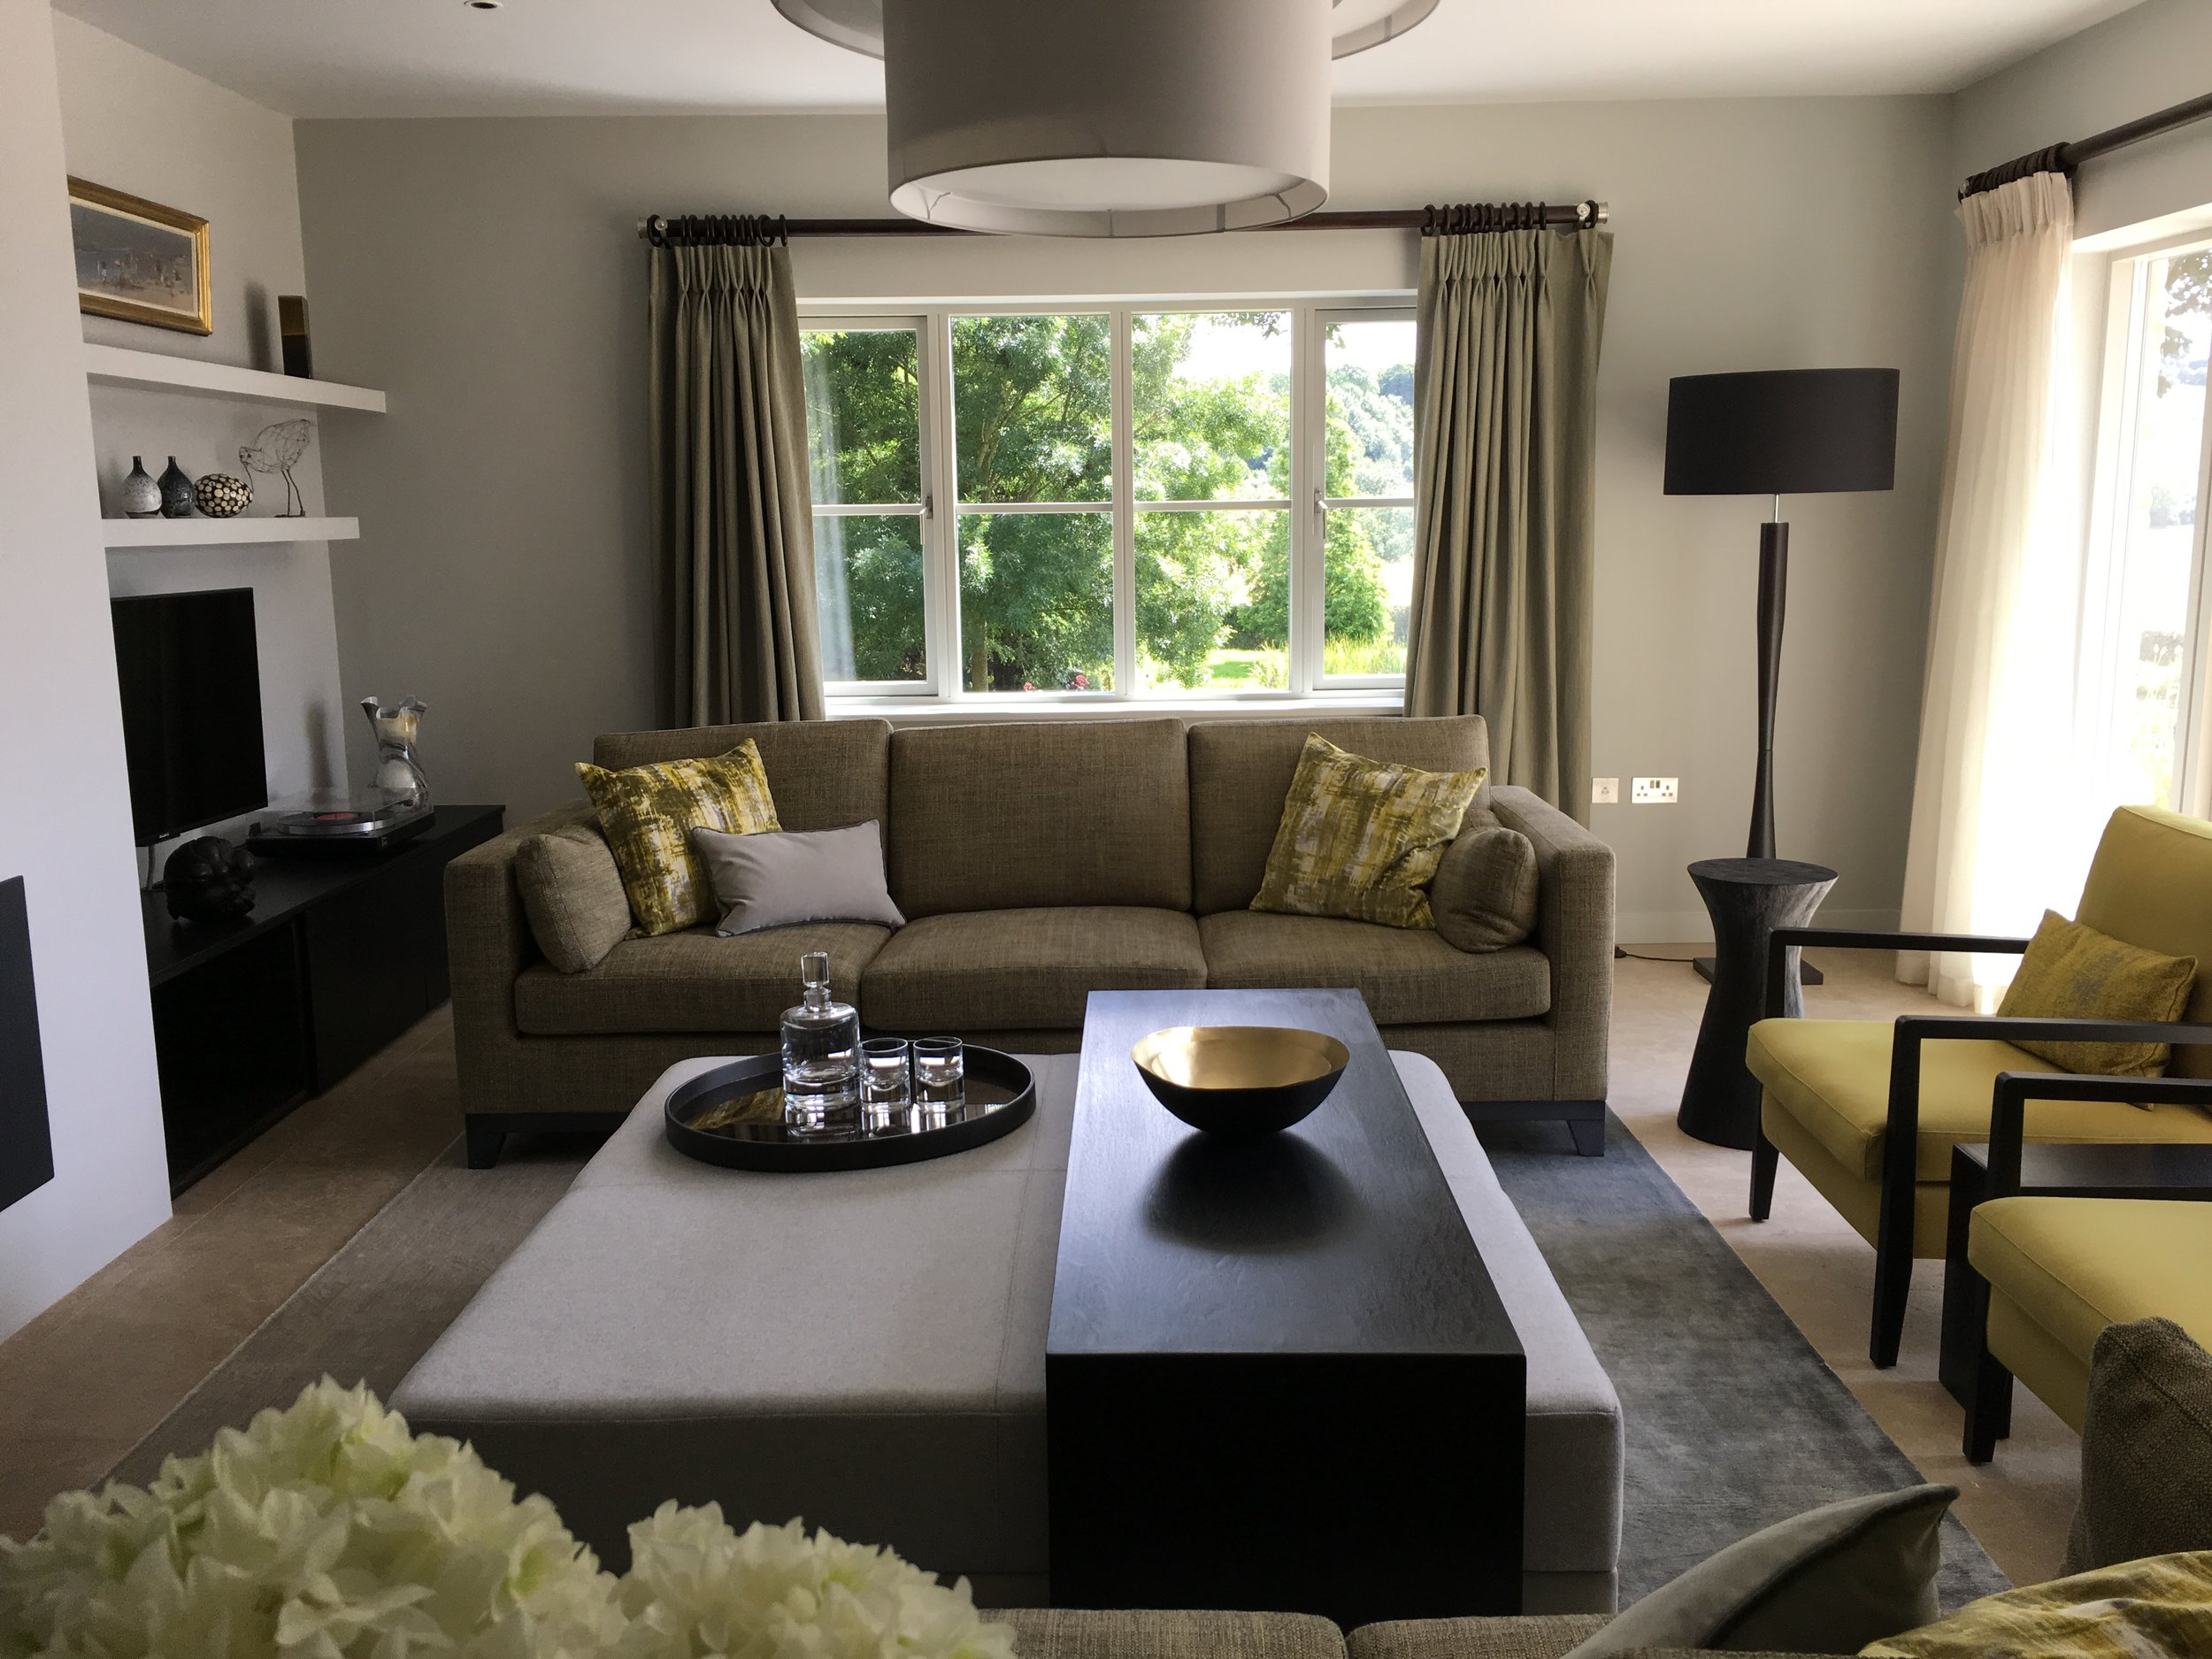 Classic, contemporary sitting room in chartreuse tones with sofa, floor lamp, armchairs, side table, bespoke ottoman and coffee table.By Joseph Interior Design, Cheltenham.